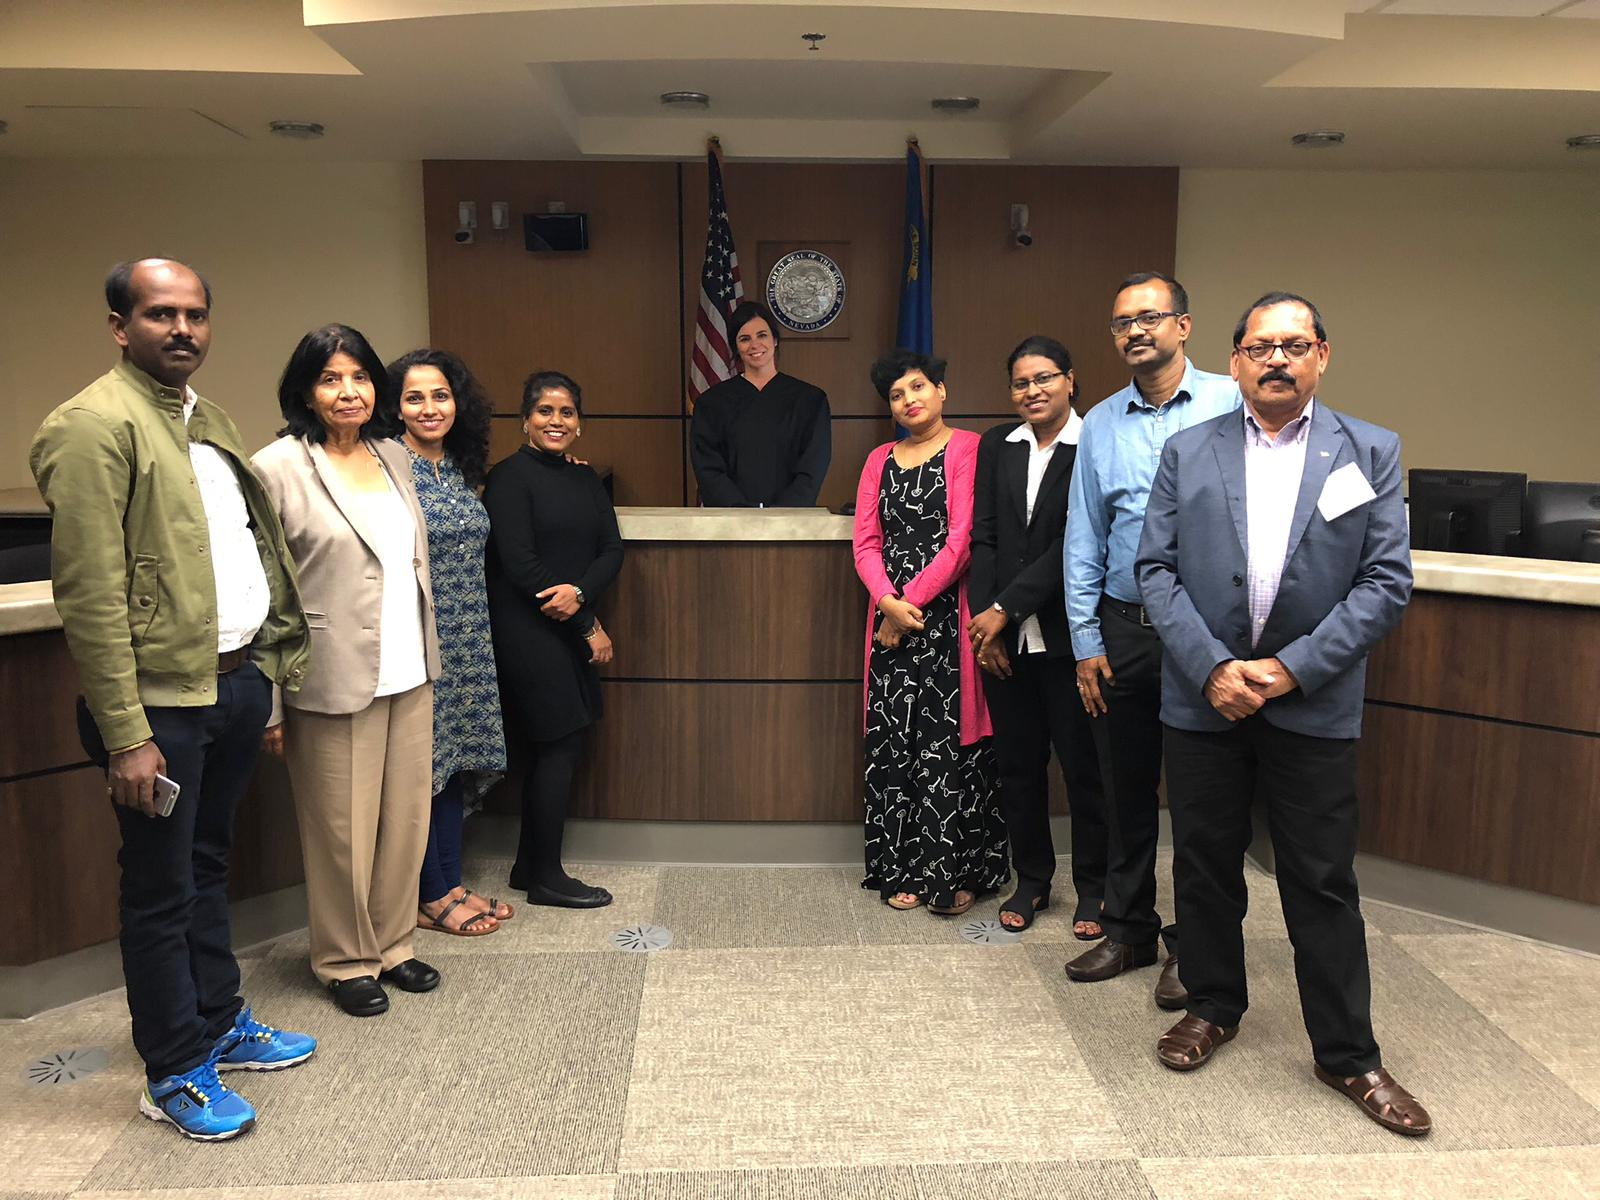 Our Hindi interpreters with international visitors in Concord on IVLP Project for